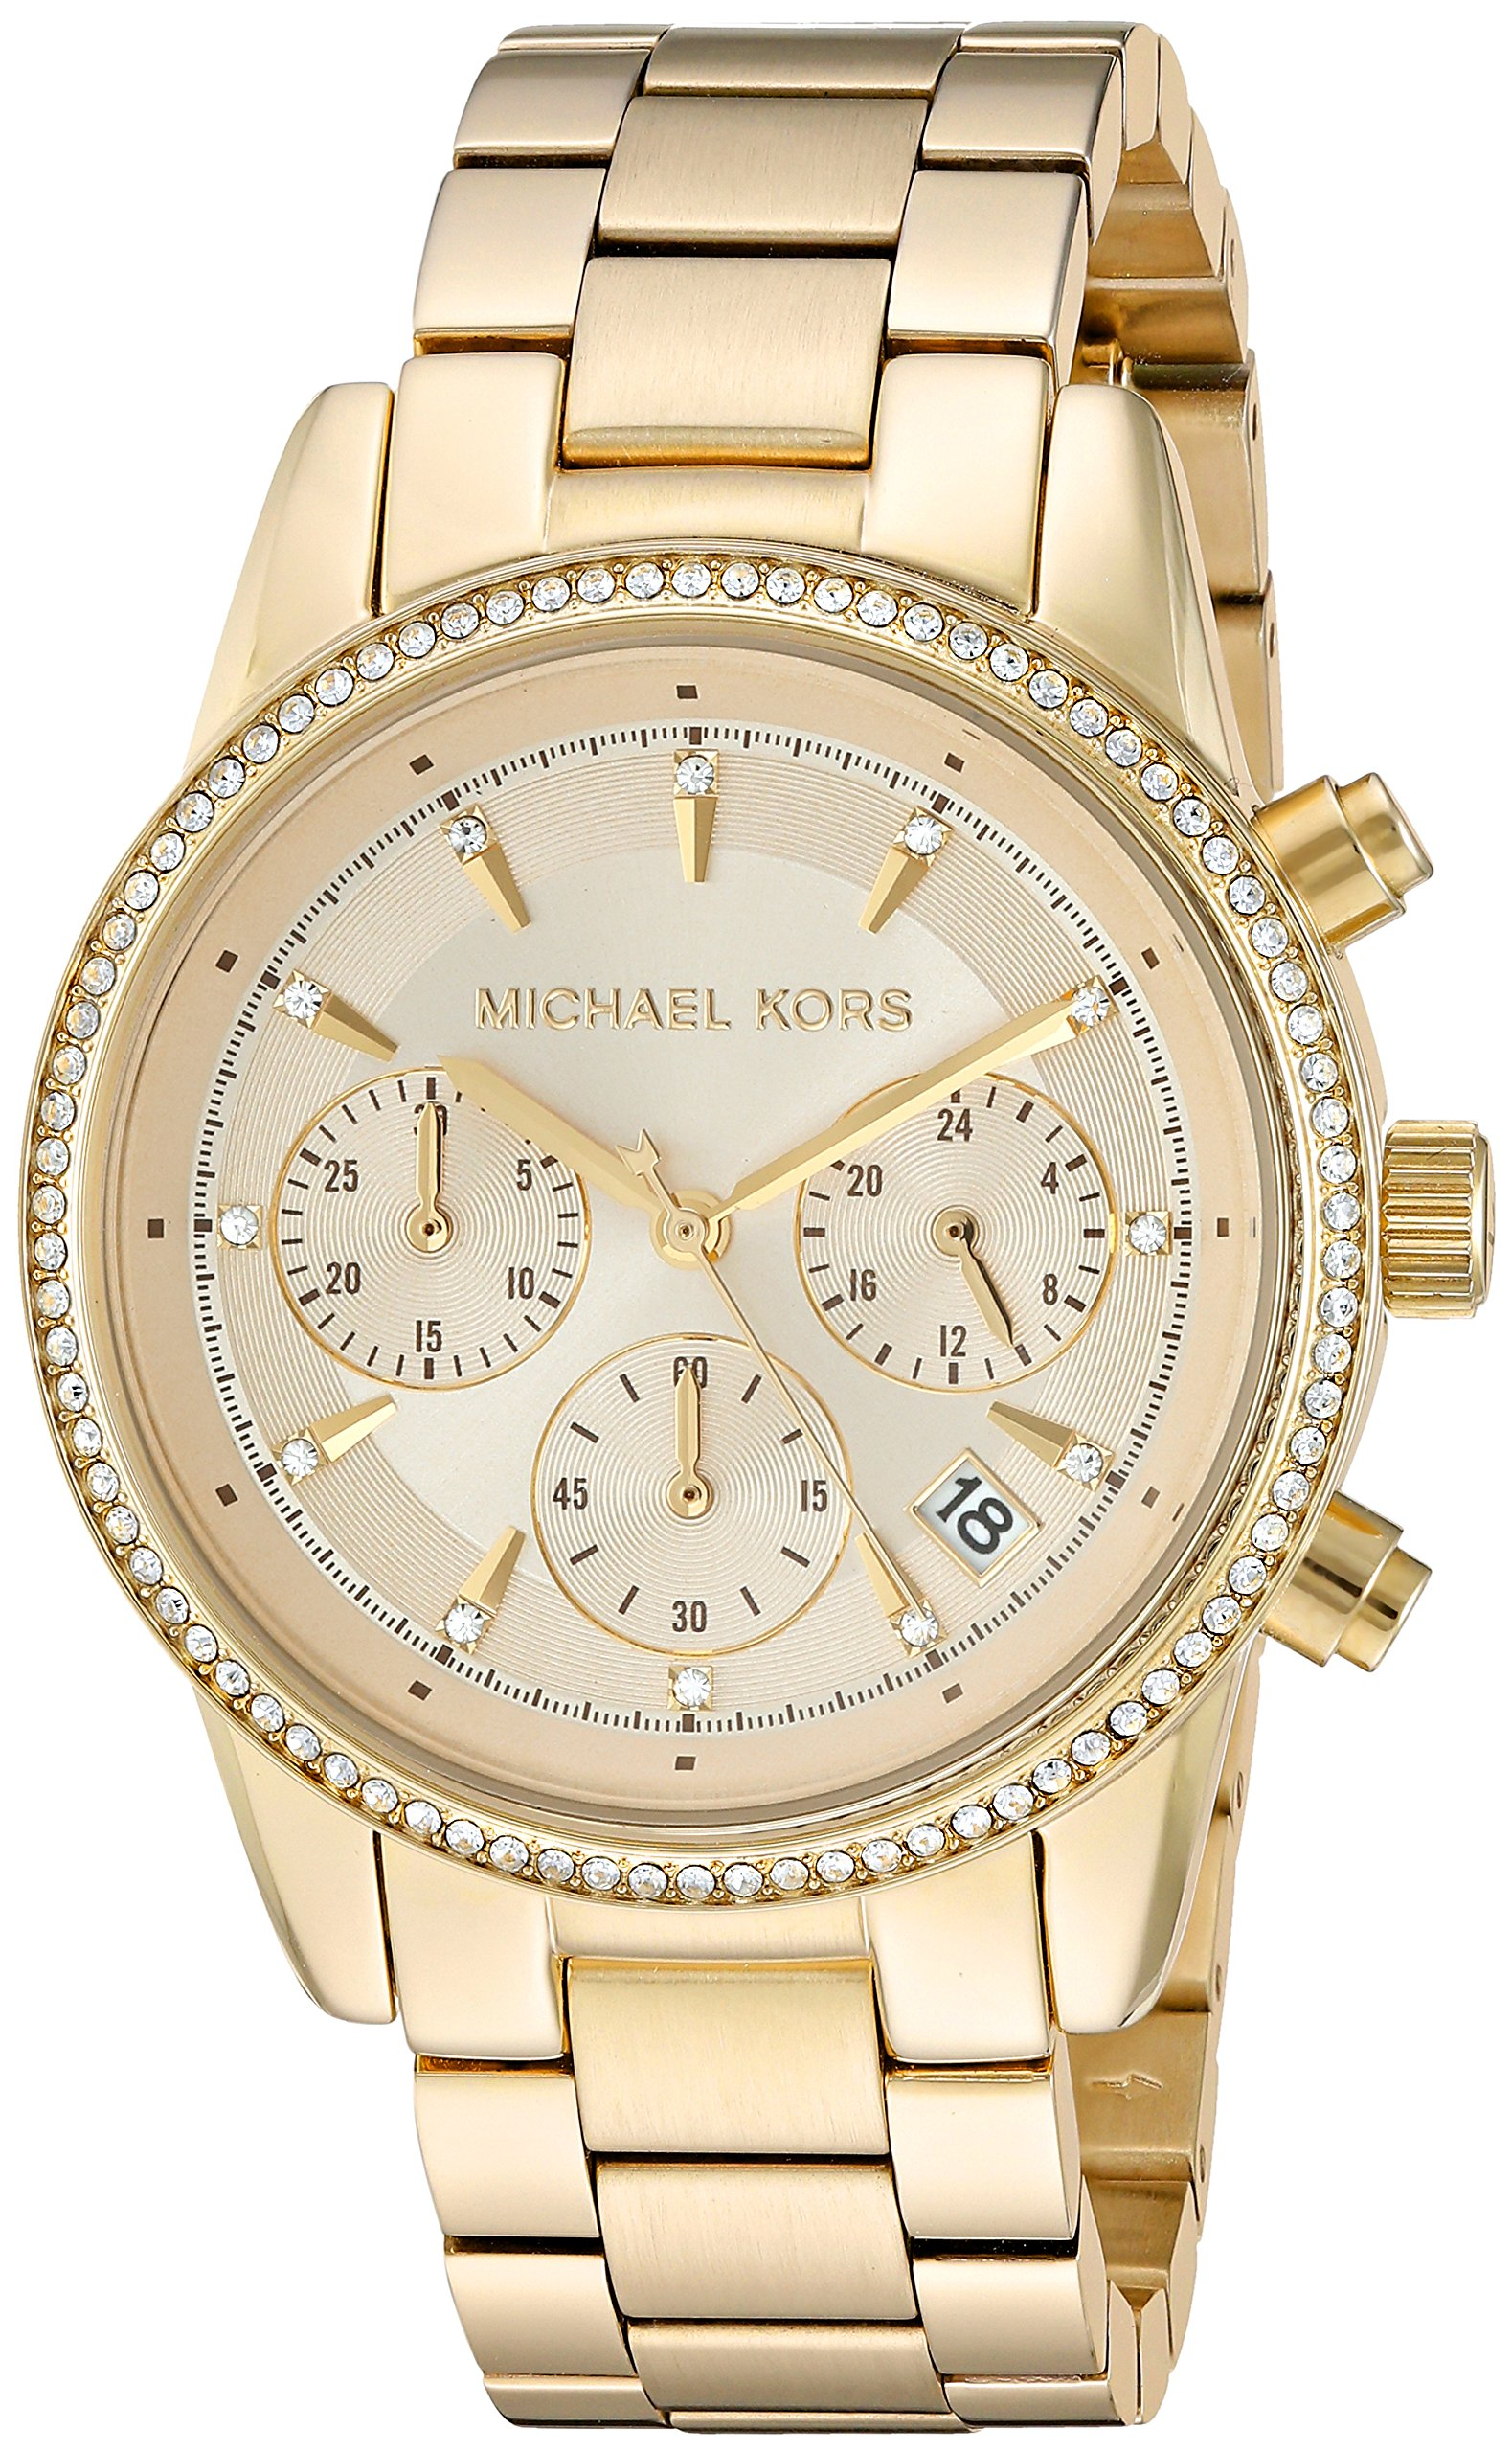 Michael Kors Women's Ritz Gold-Tone Watch MK6356